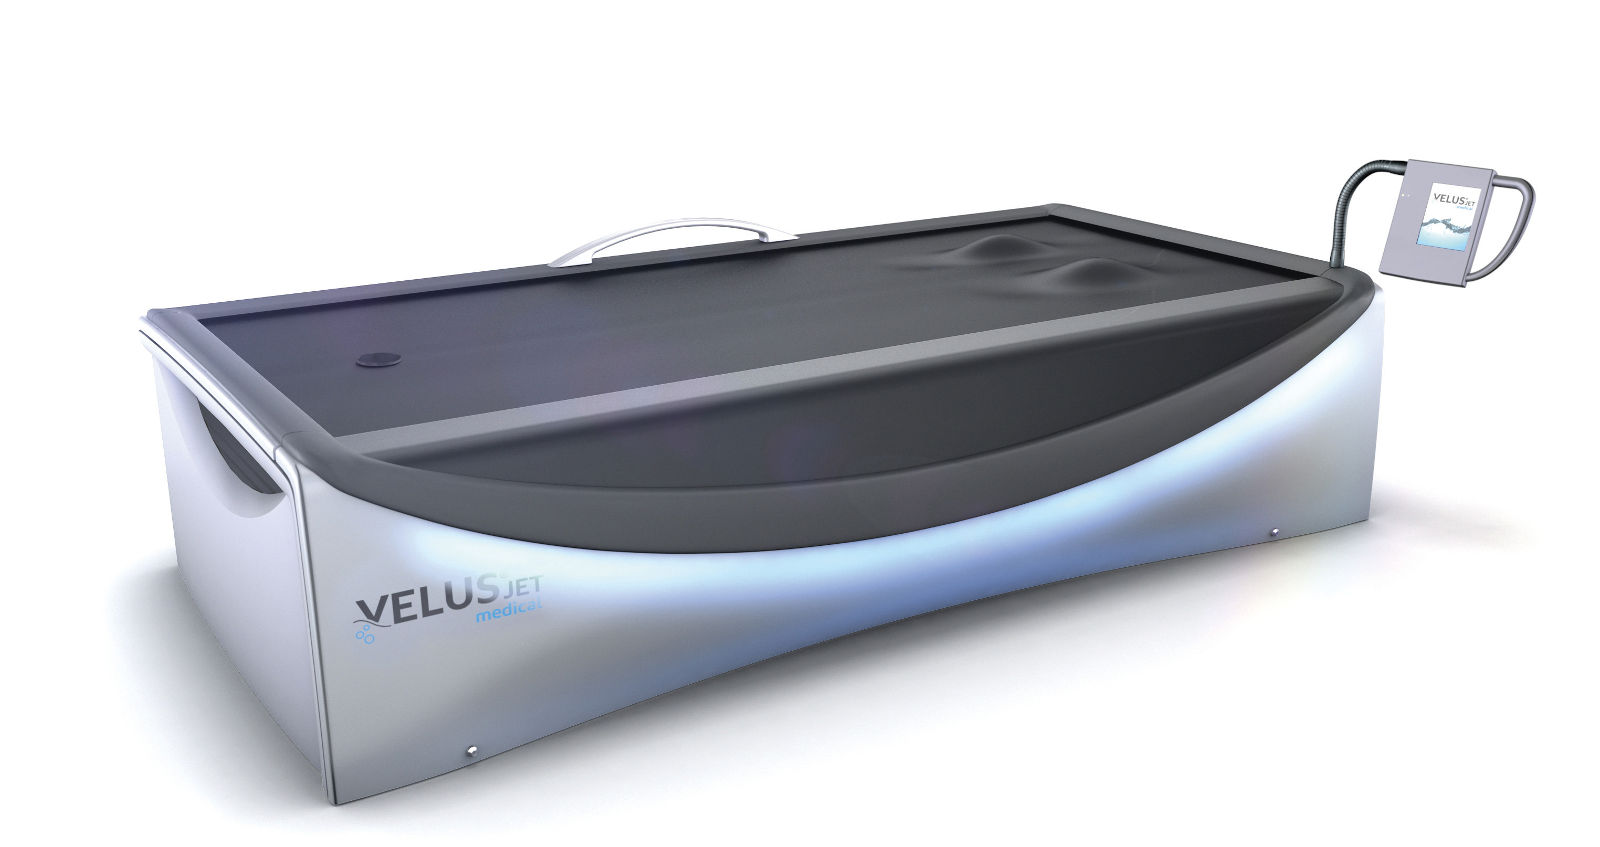 Velus Jet® medical